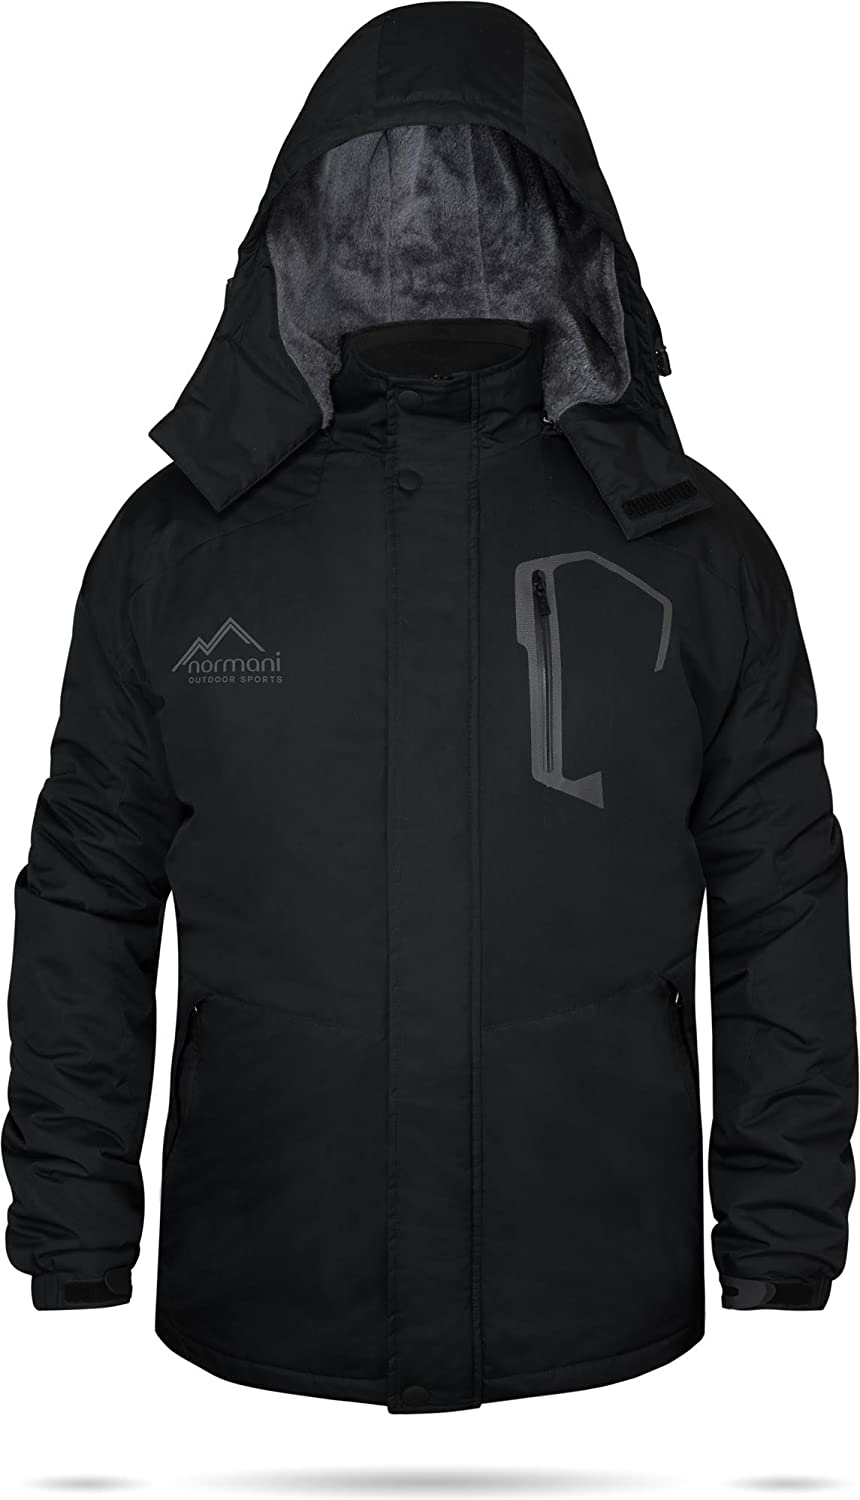 Winterjacke Softshelljacke Yukon-Edition Schwarz [S-3XL]: Amazon.de: Sport  & Freizeit